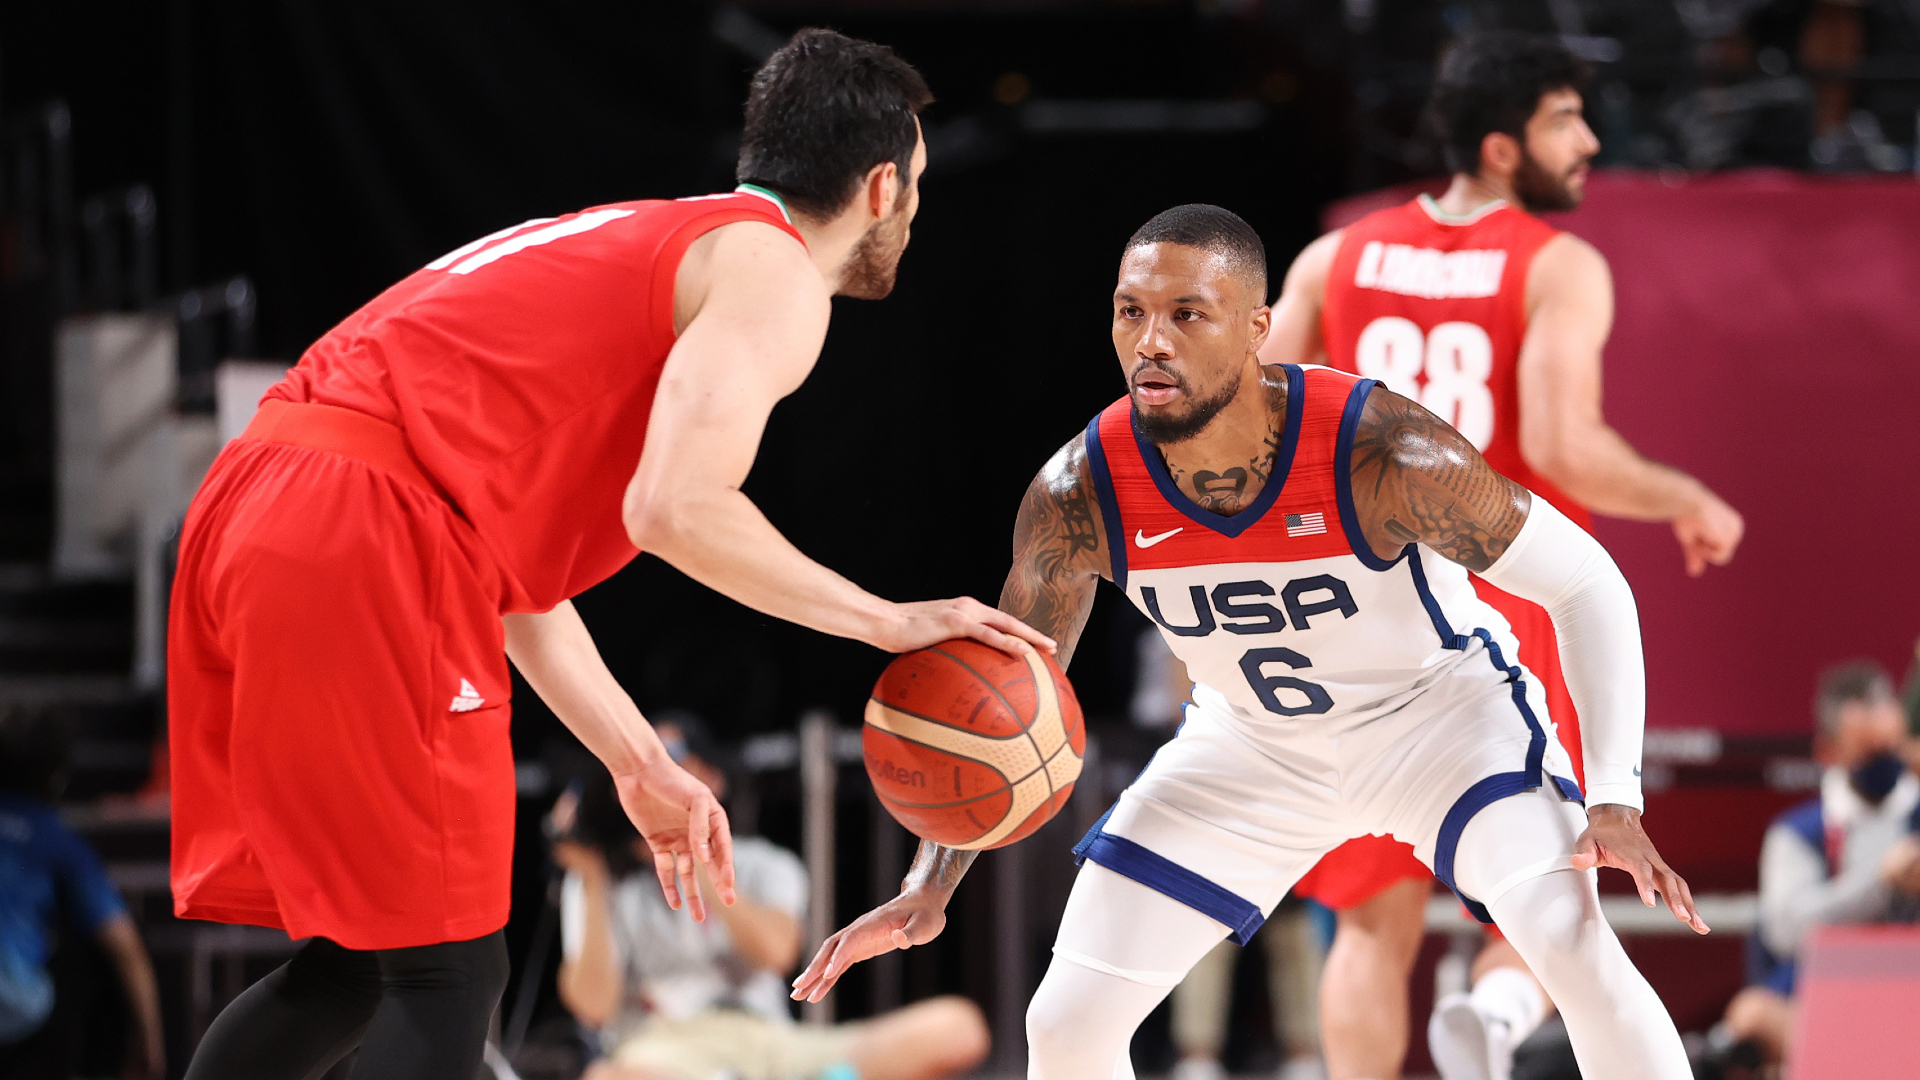 LIVE: Team USA continues Olympic play vs. Iran